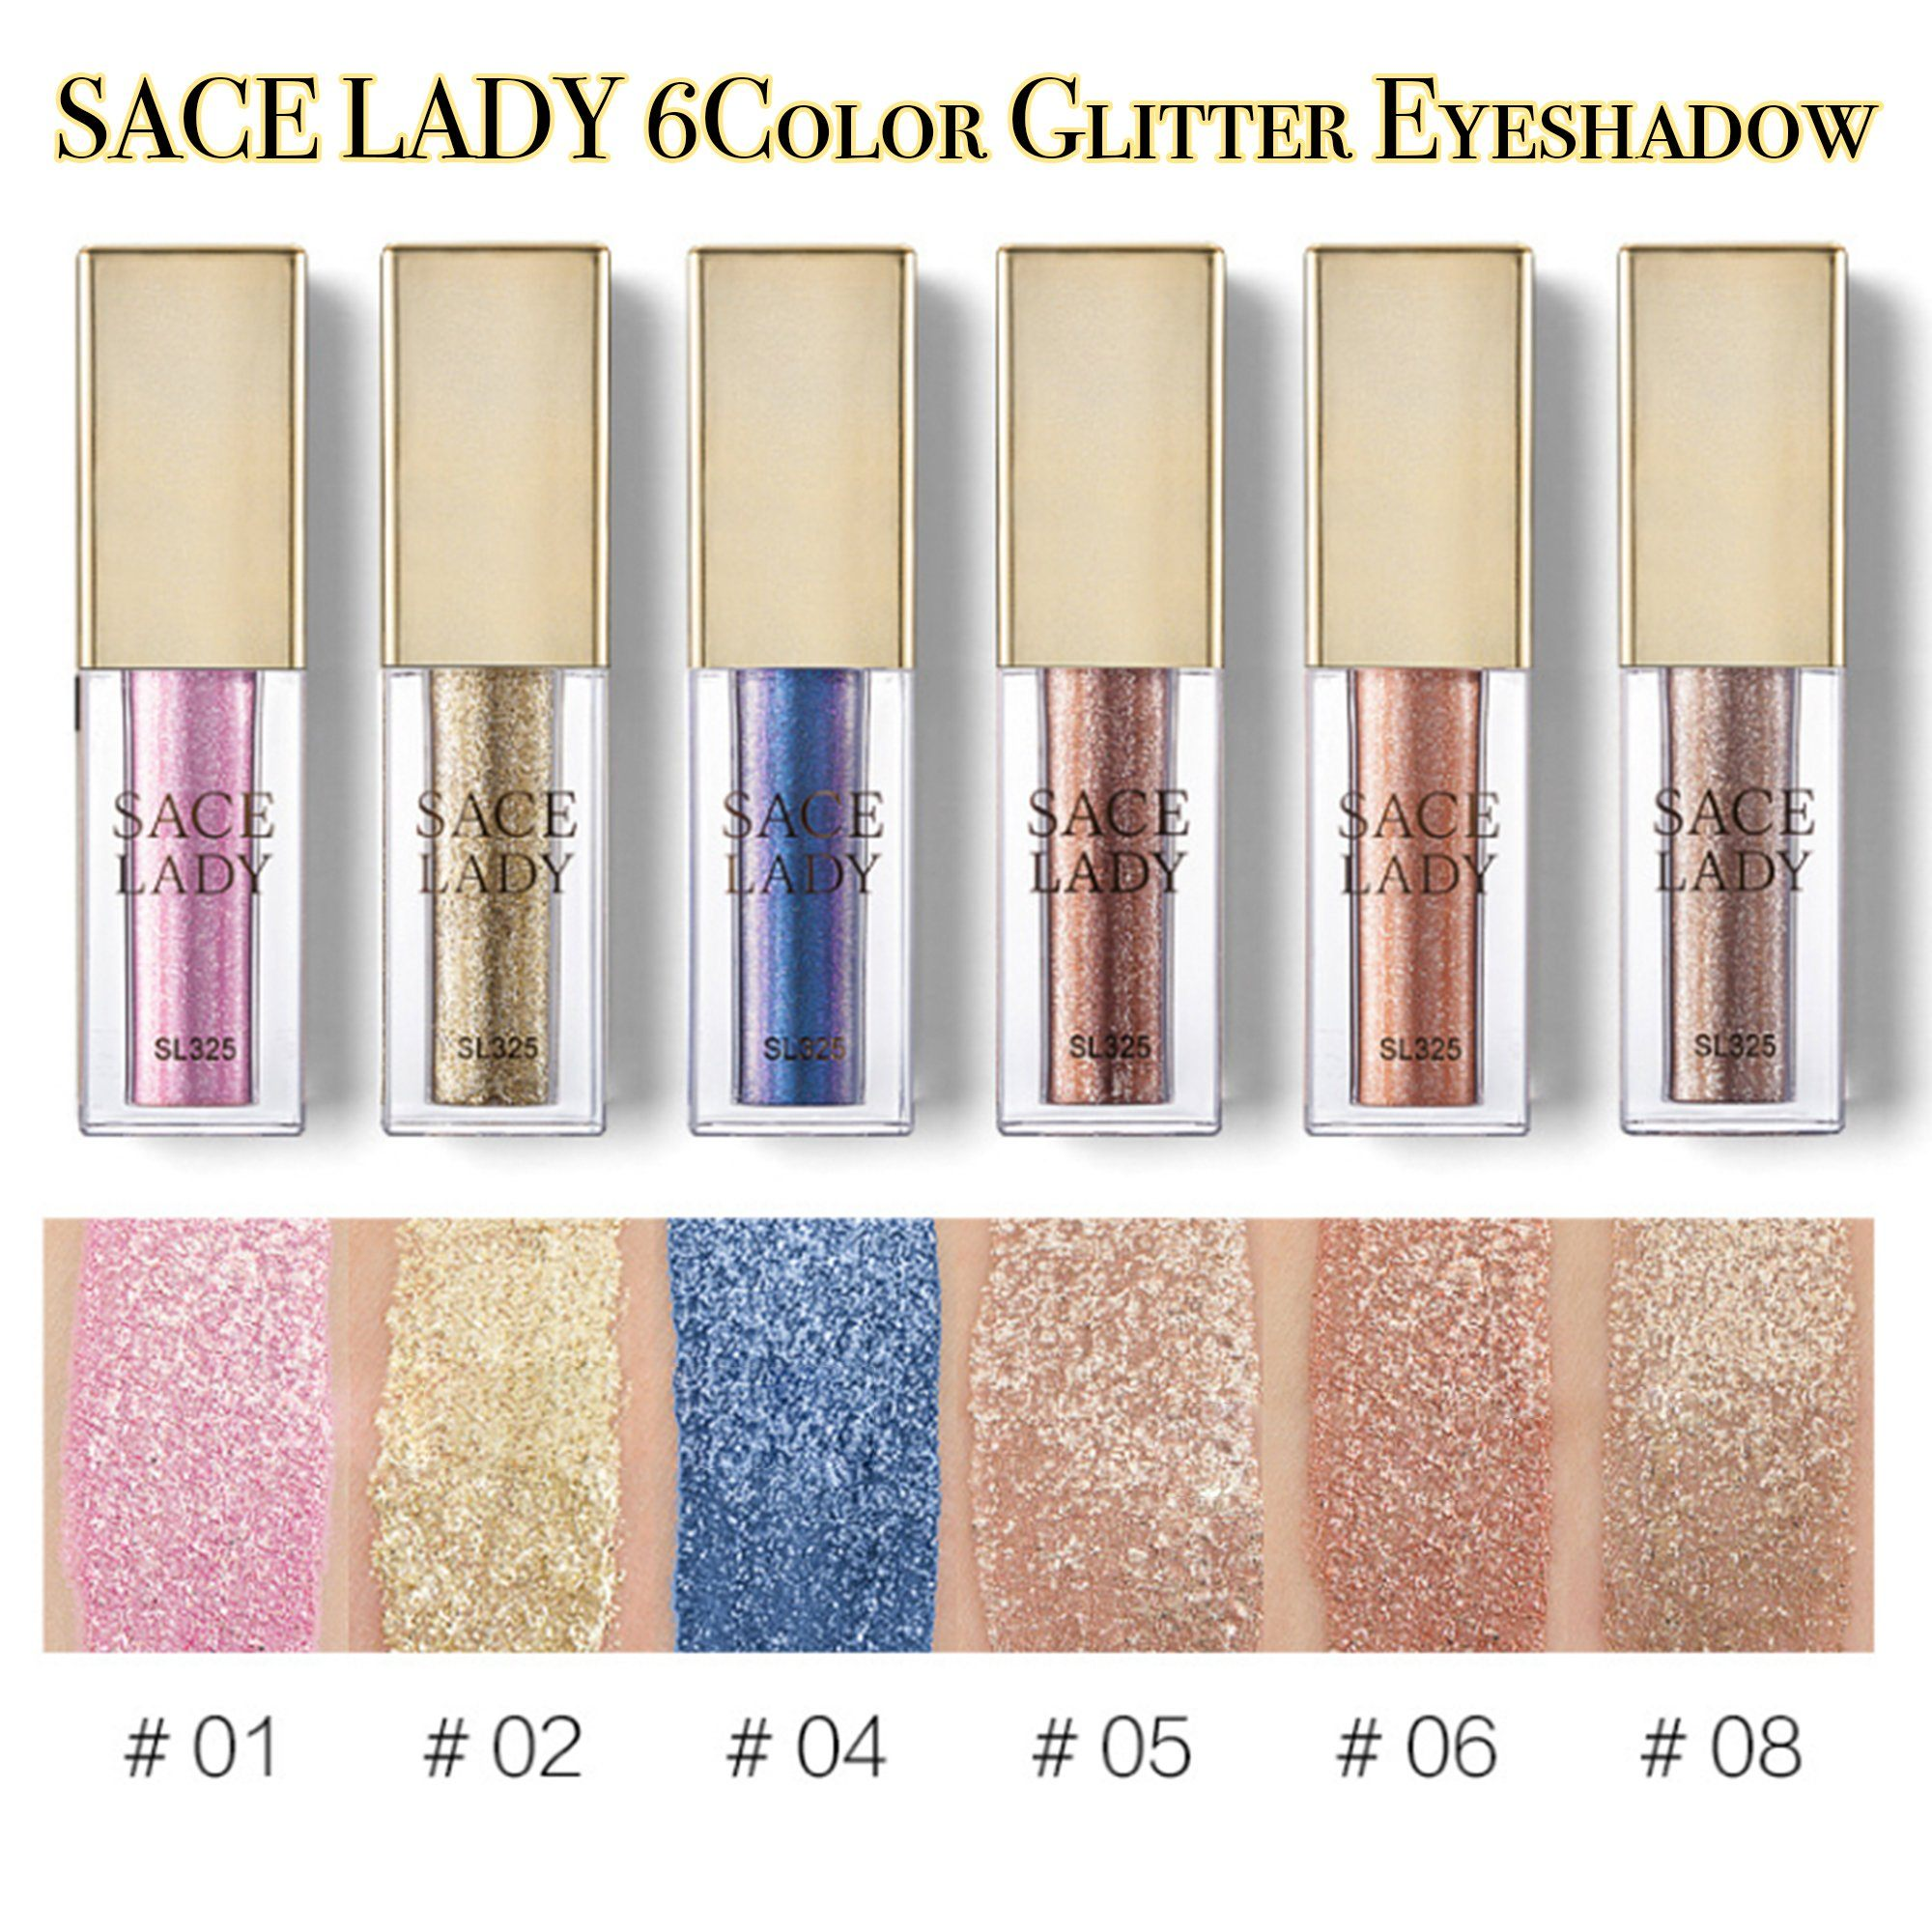 SACE LADY 6Color Glitter Eyeshadow